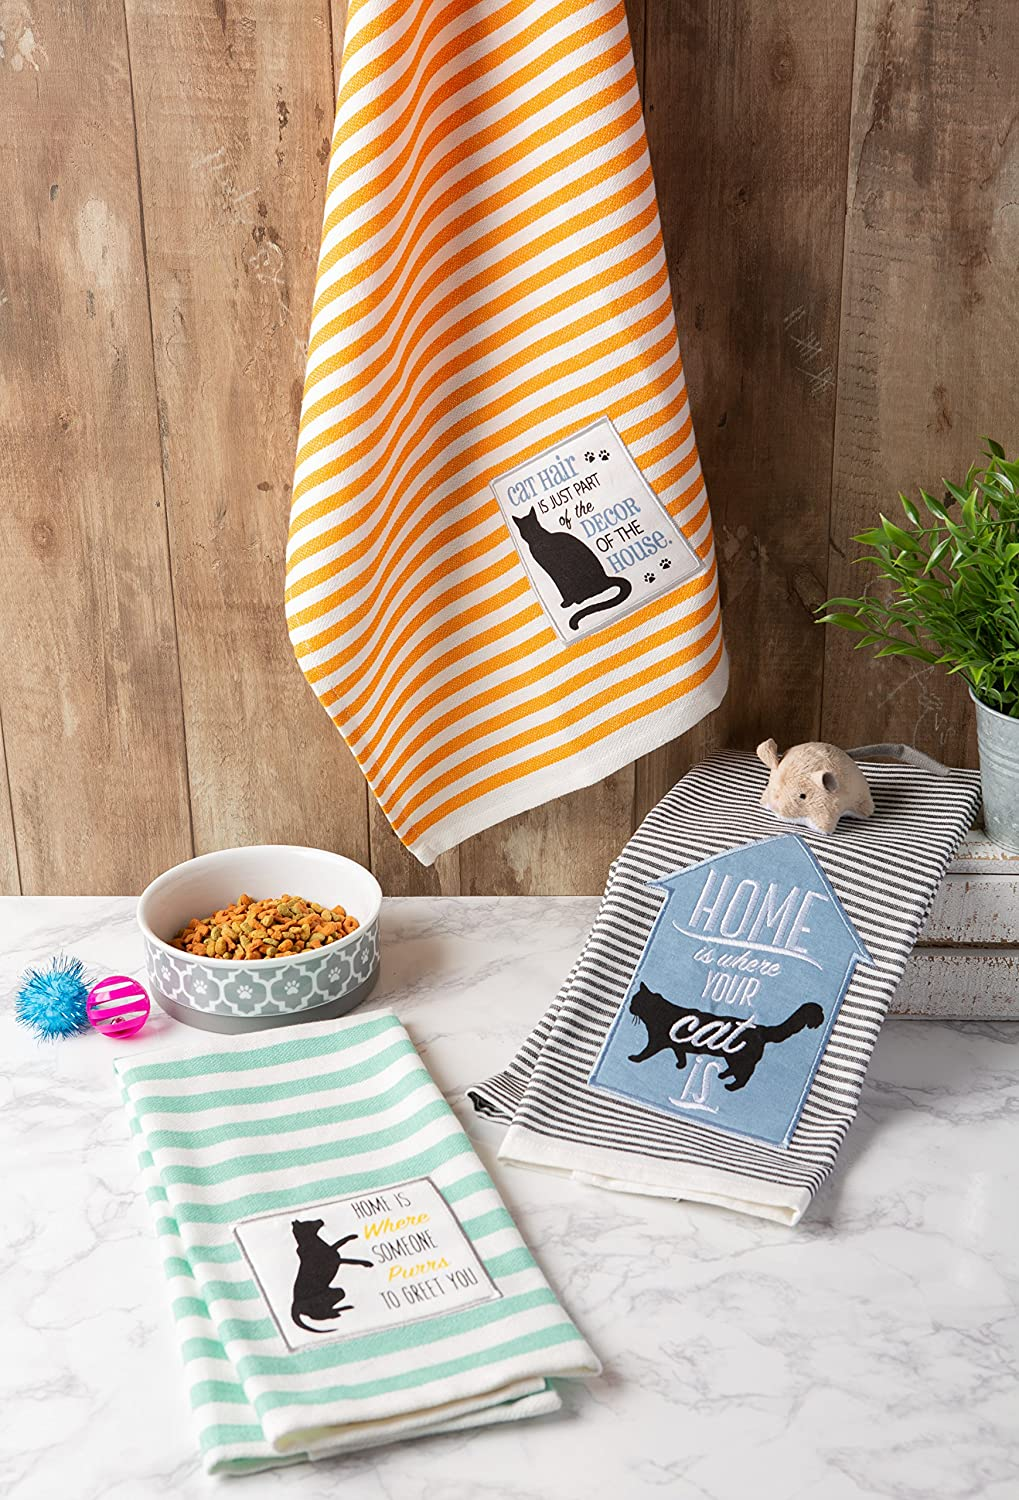 Ultra-Absorbent Dishtowel-18 x 28 Dishtowels Dishtowel-18 x 28 CAMZ37436 Drying DII 100/% Cotton Cleaning Pet Lover Printed Dish Towels 18 x 28 Set of 3-Cat Everyday Basic Home Kitchen